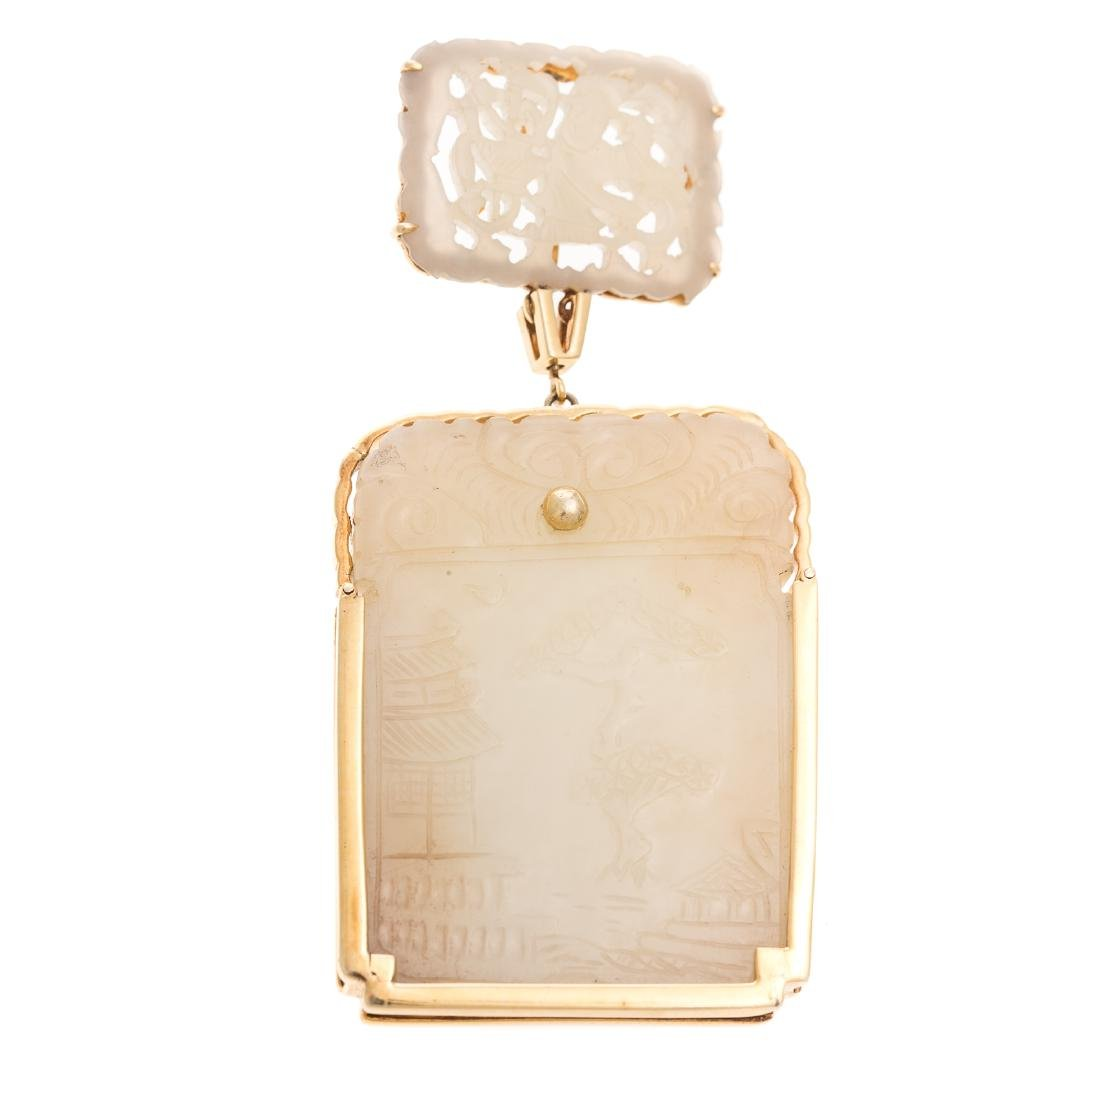 A Chinese Jade Plaque Mounted in 18K Gold